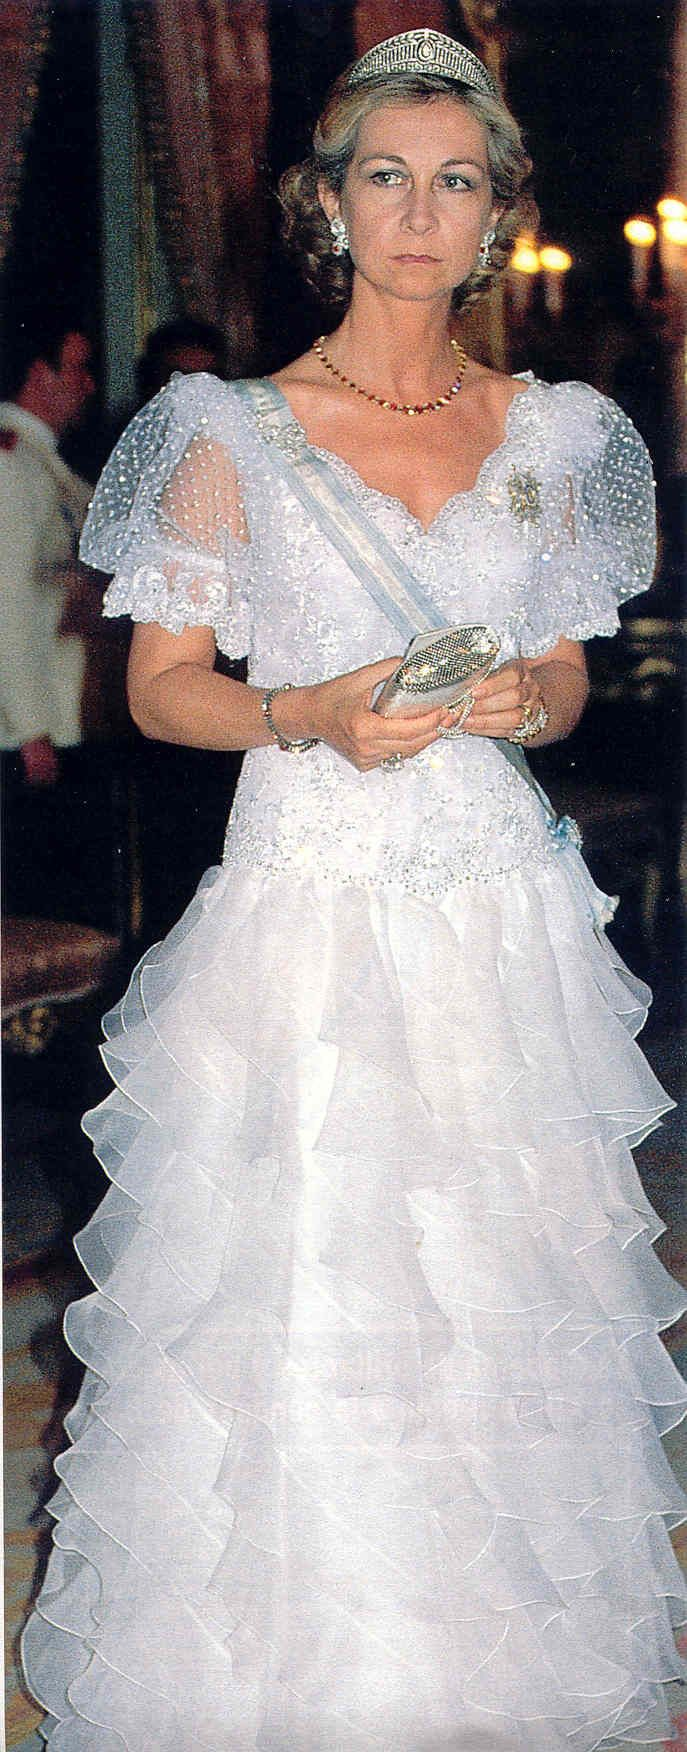 Queen Sofia, May, 1980. an author made a controvercial book about her loneliness as wife of king juan carlos. but she is very great queen, she always smile and did great job on charity.